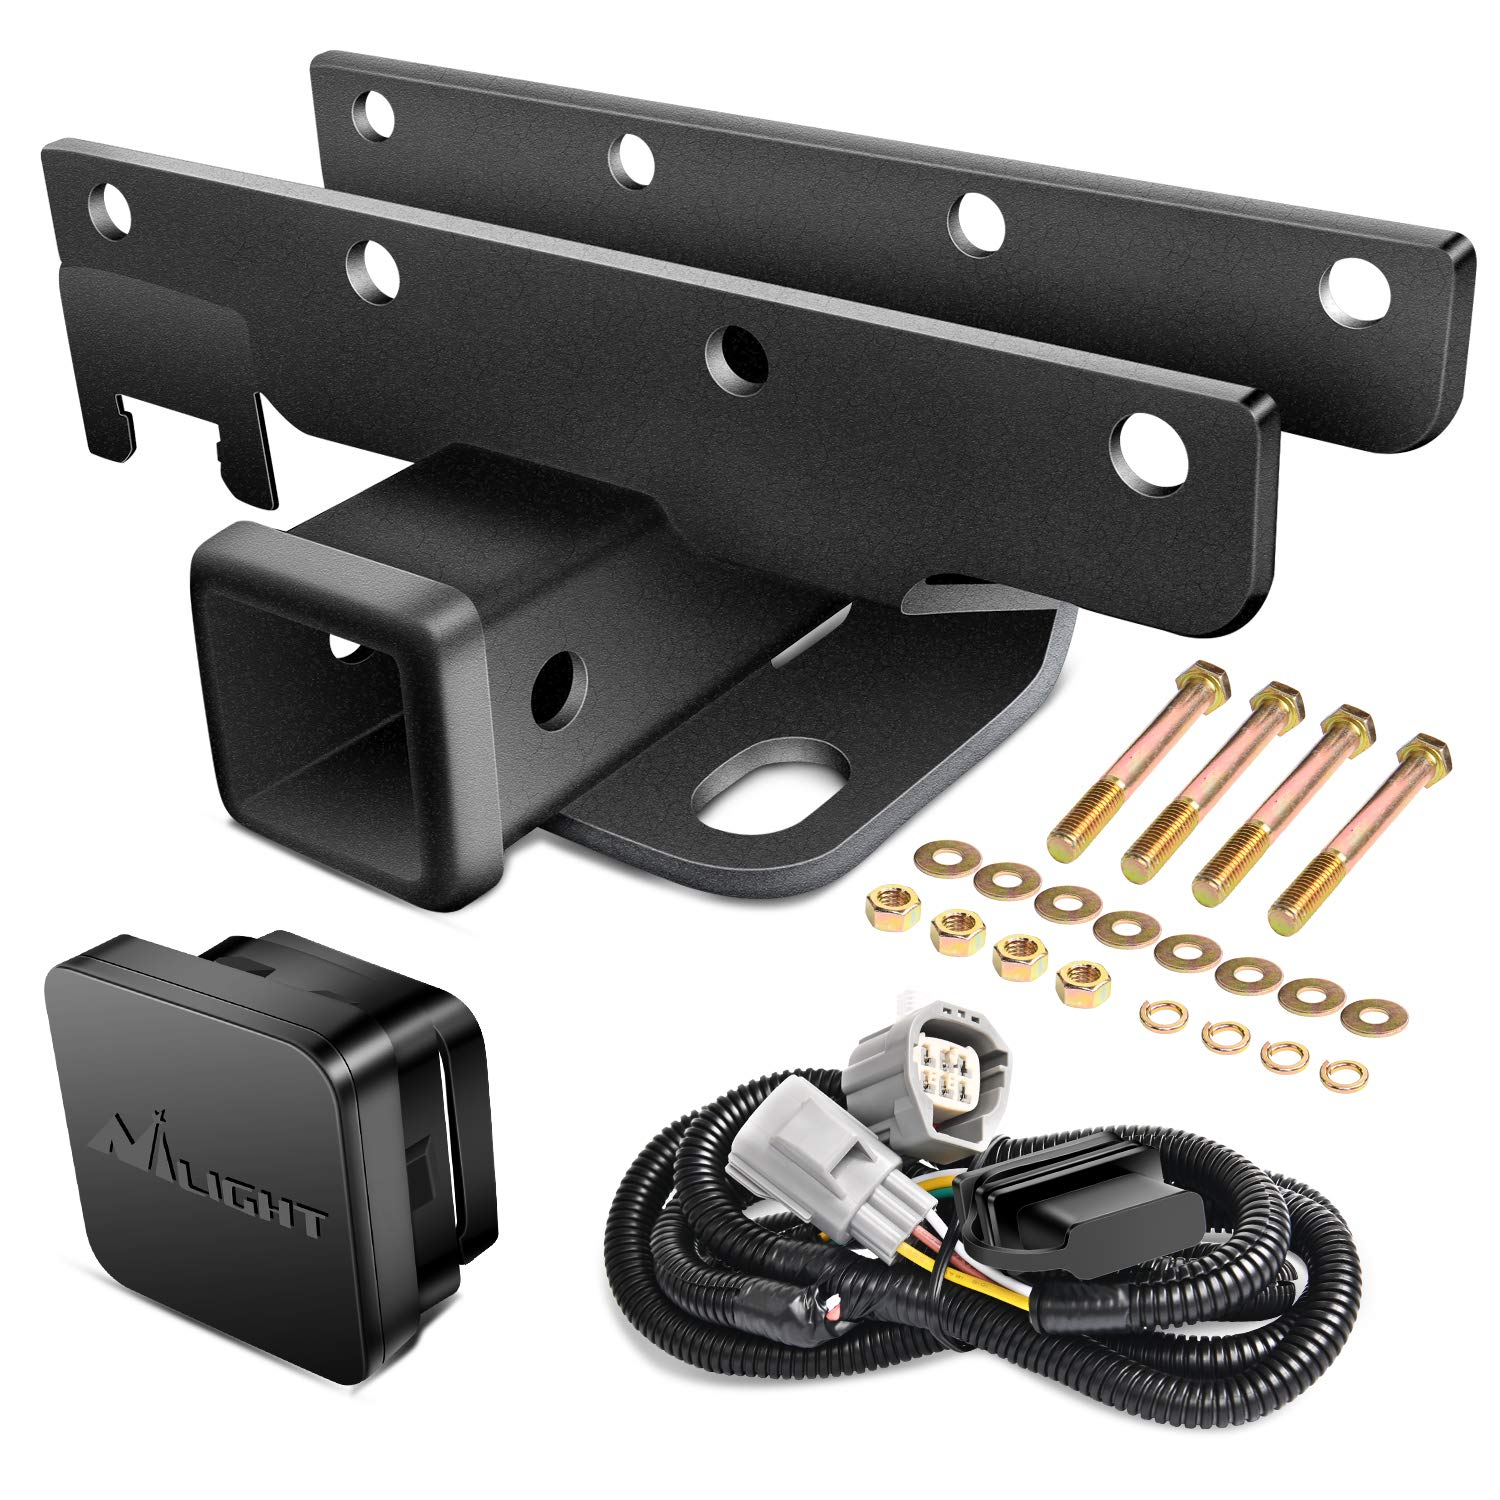 """Nilight - JK-61A 2"""" inch Rear Bumper Tow Trailer Hitch Receiver Kit, Compatible for 2007-2018 Jeep Wrangler JK 4 Door & 2 Door Unlimited, w/4-Pin Wiring Harness (Exclude JL Models)"""